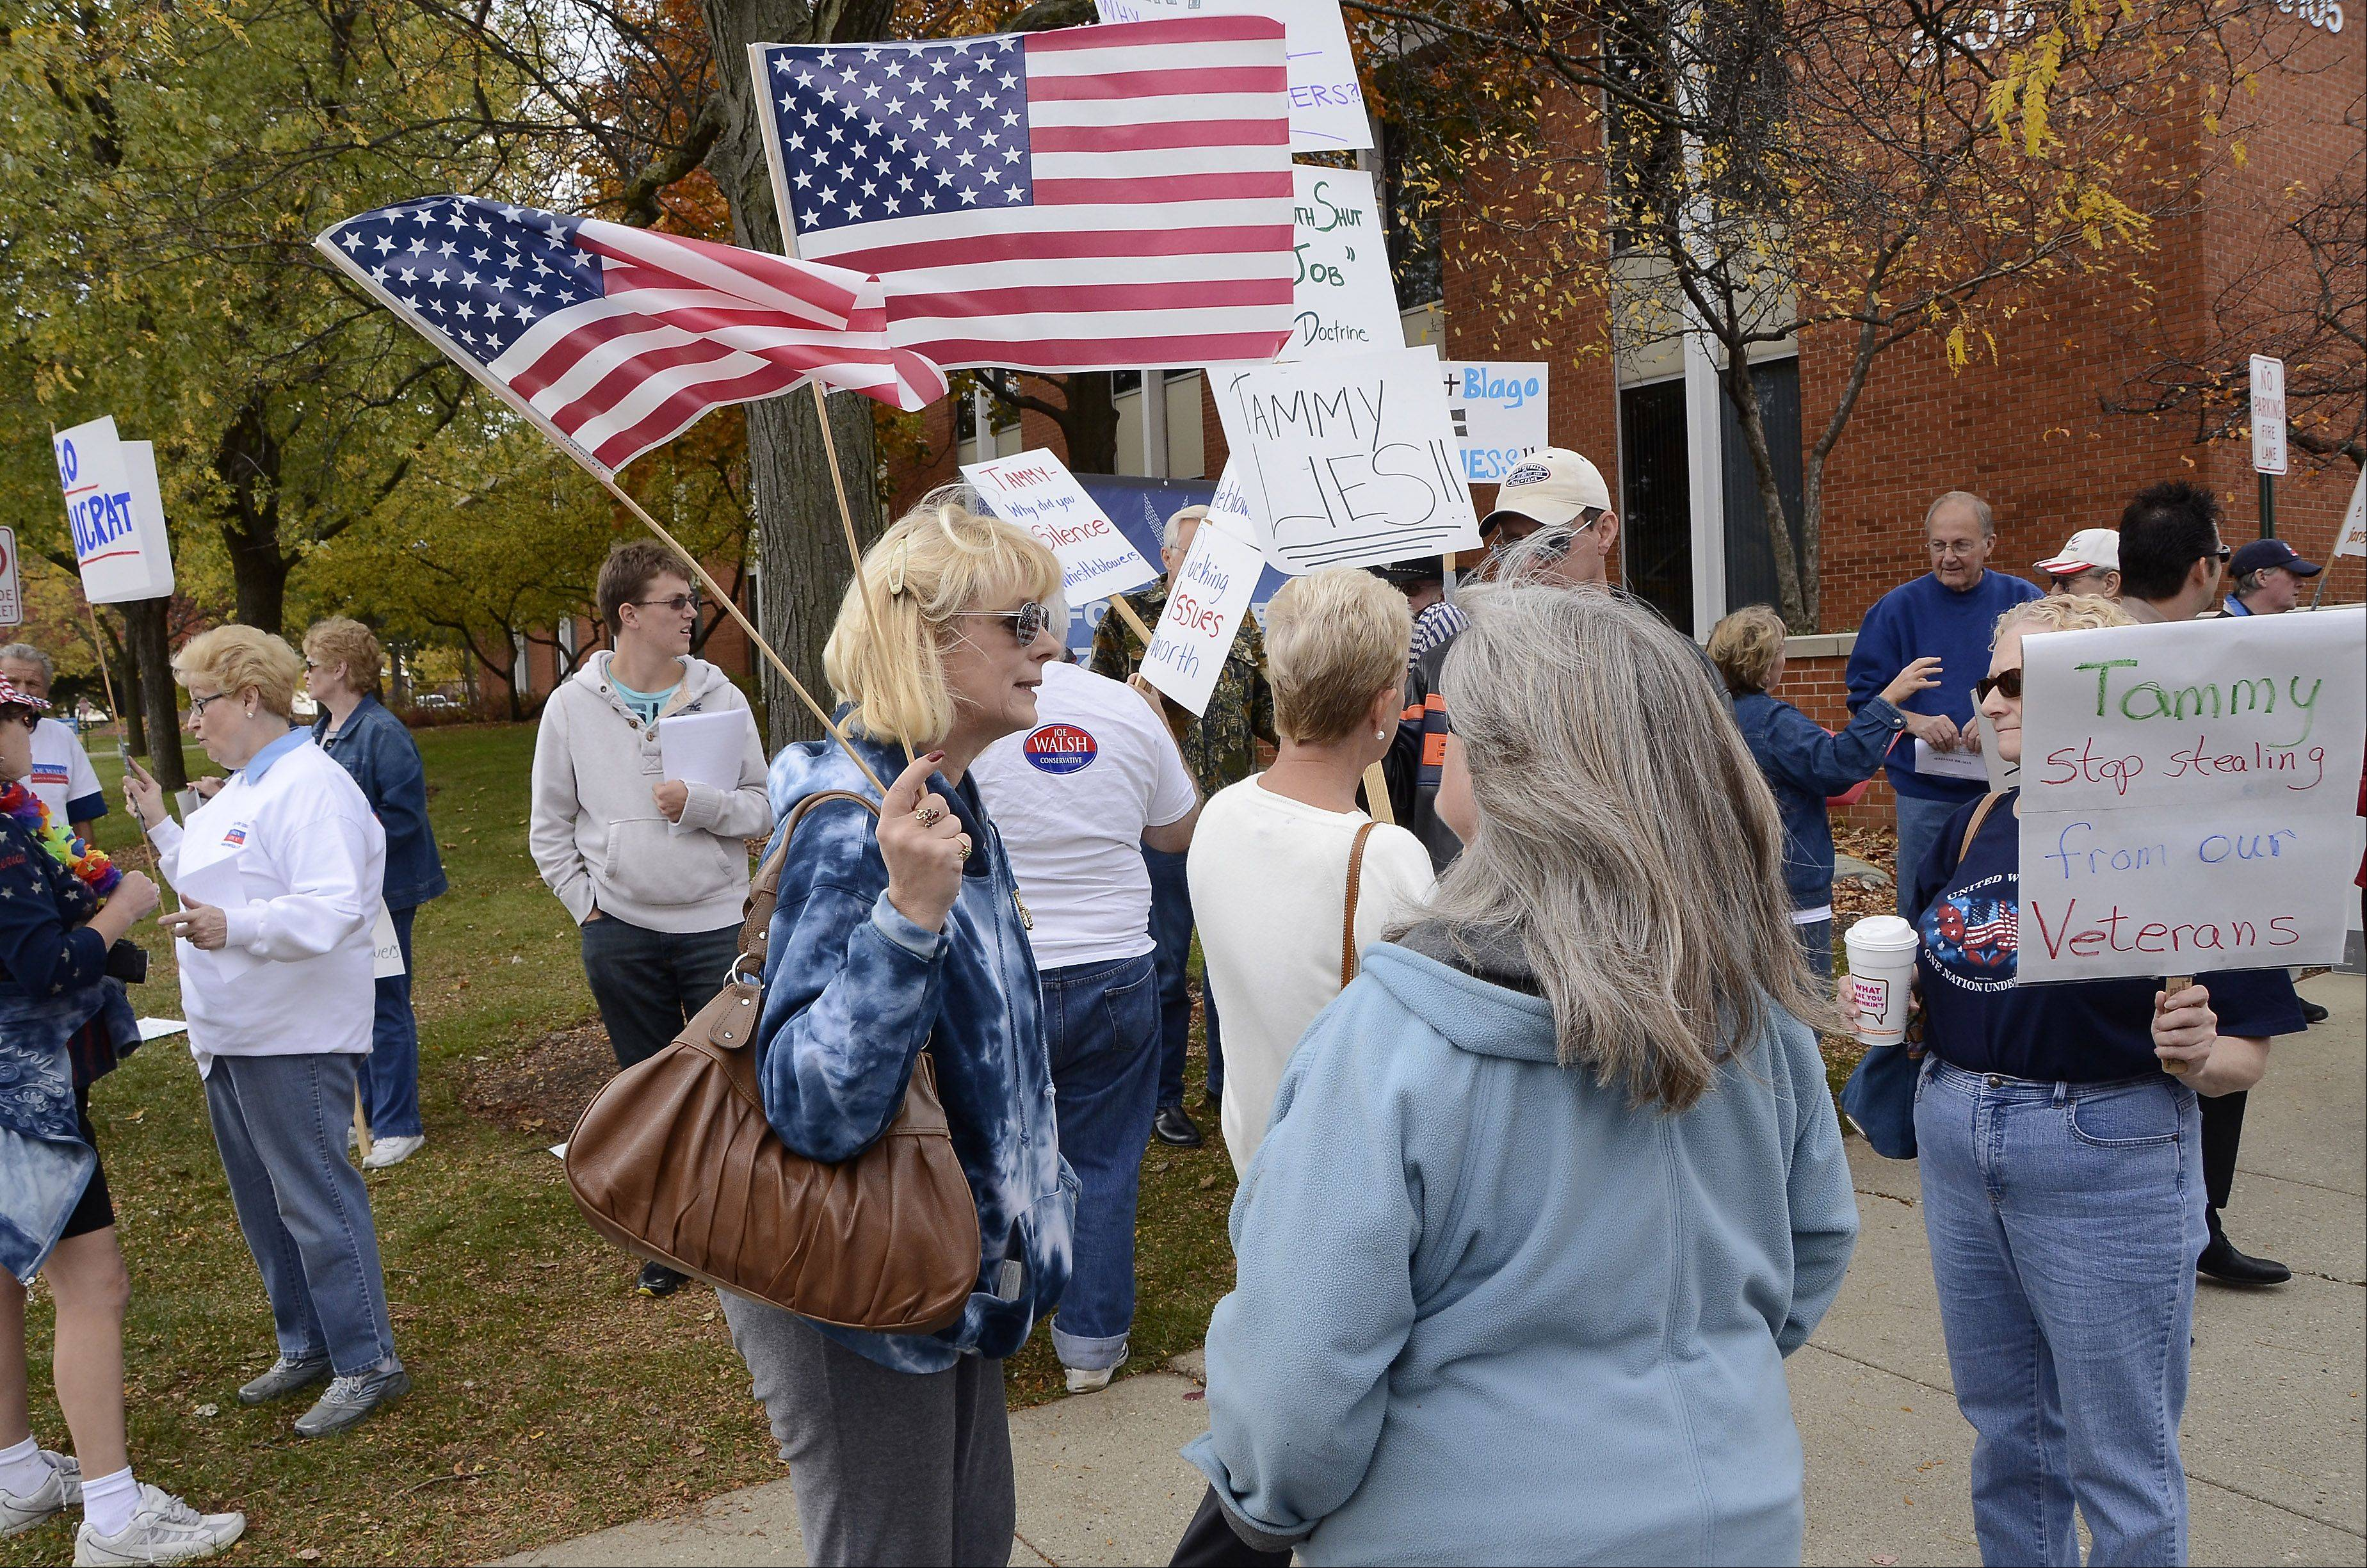 About 25 supporters of Republican Congressman Joe Walsh protest outside the office of Democratic opponent Tammy Duckworth Wednesday afternoon in Rolling Meadows.